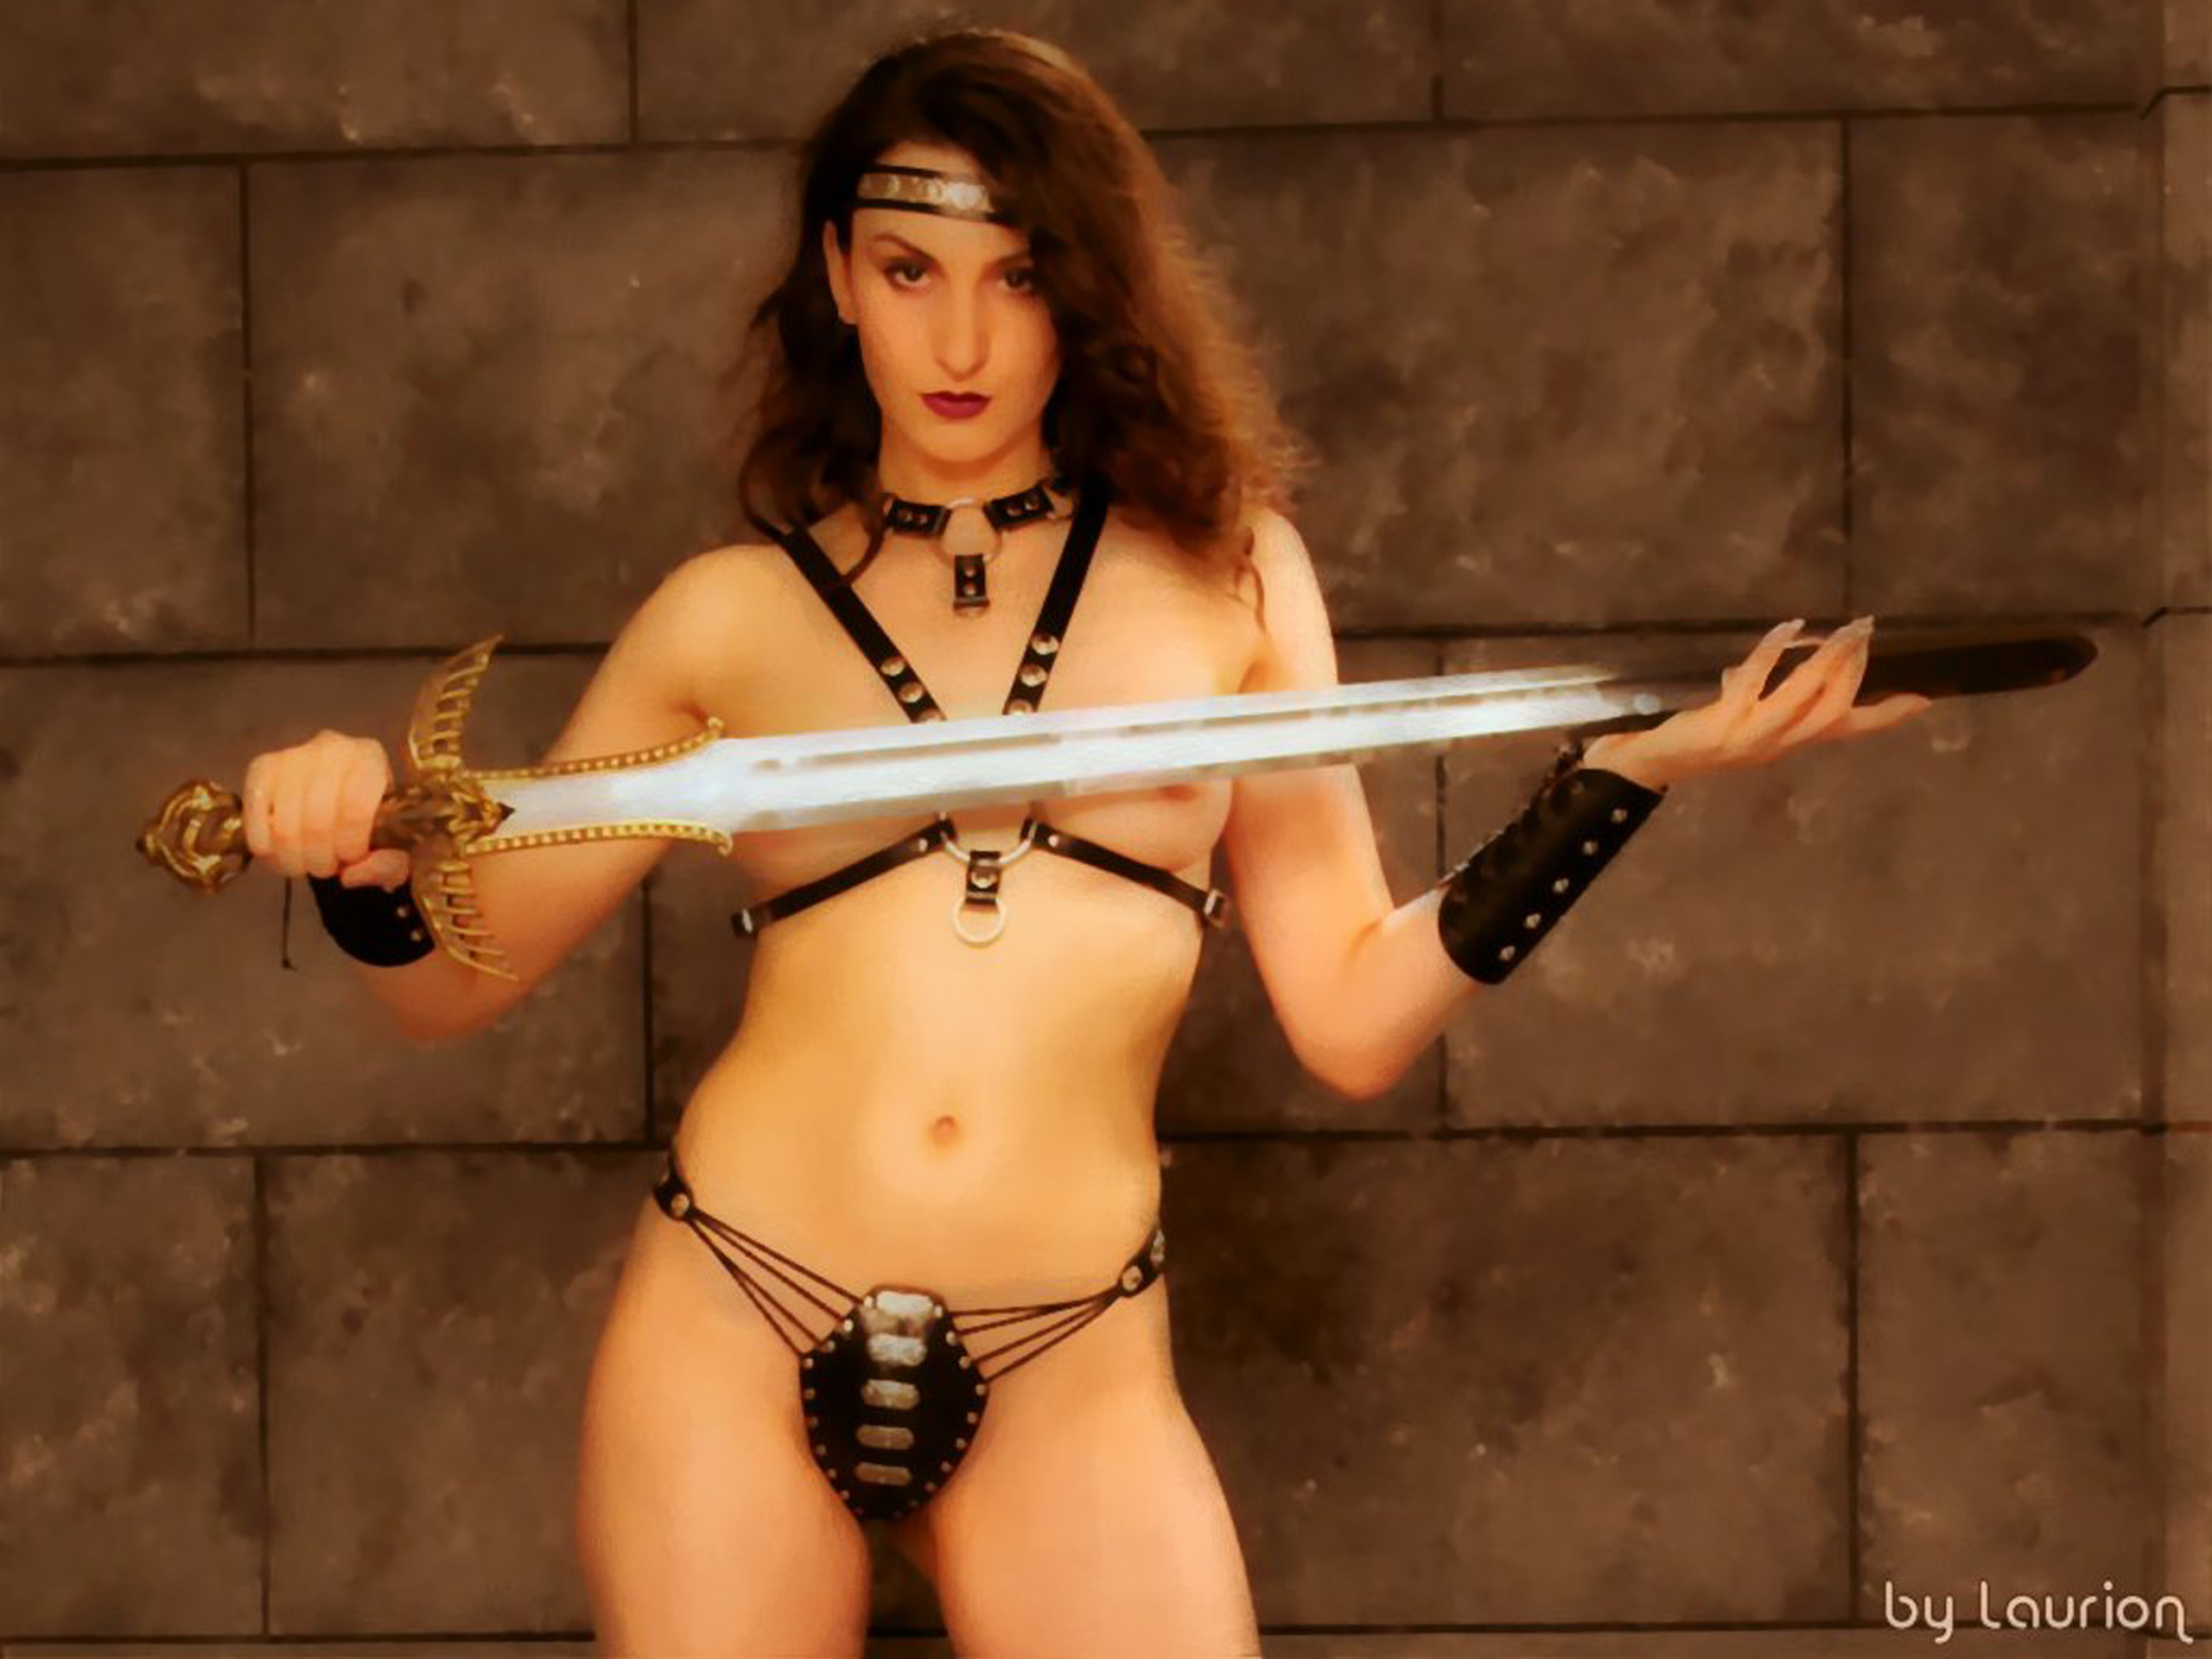 Swords nude fantasy women with